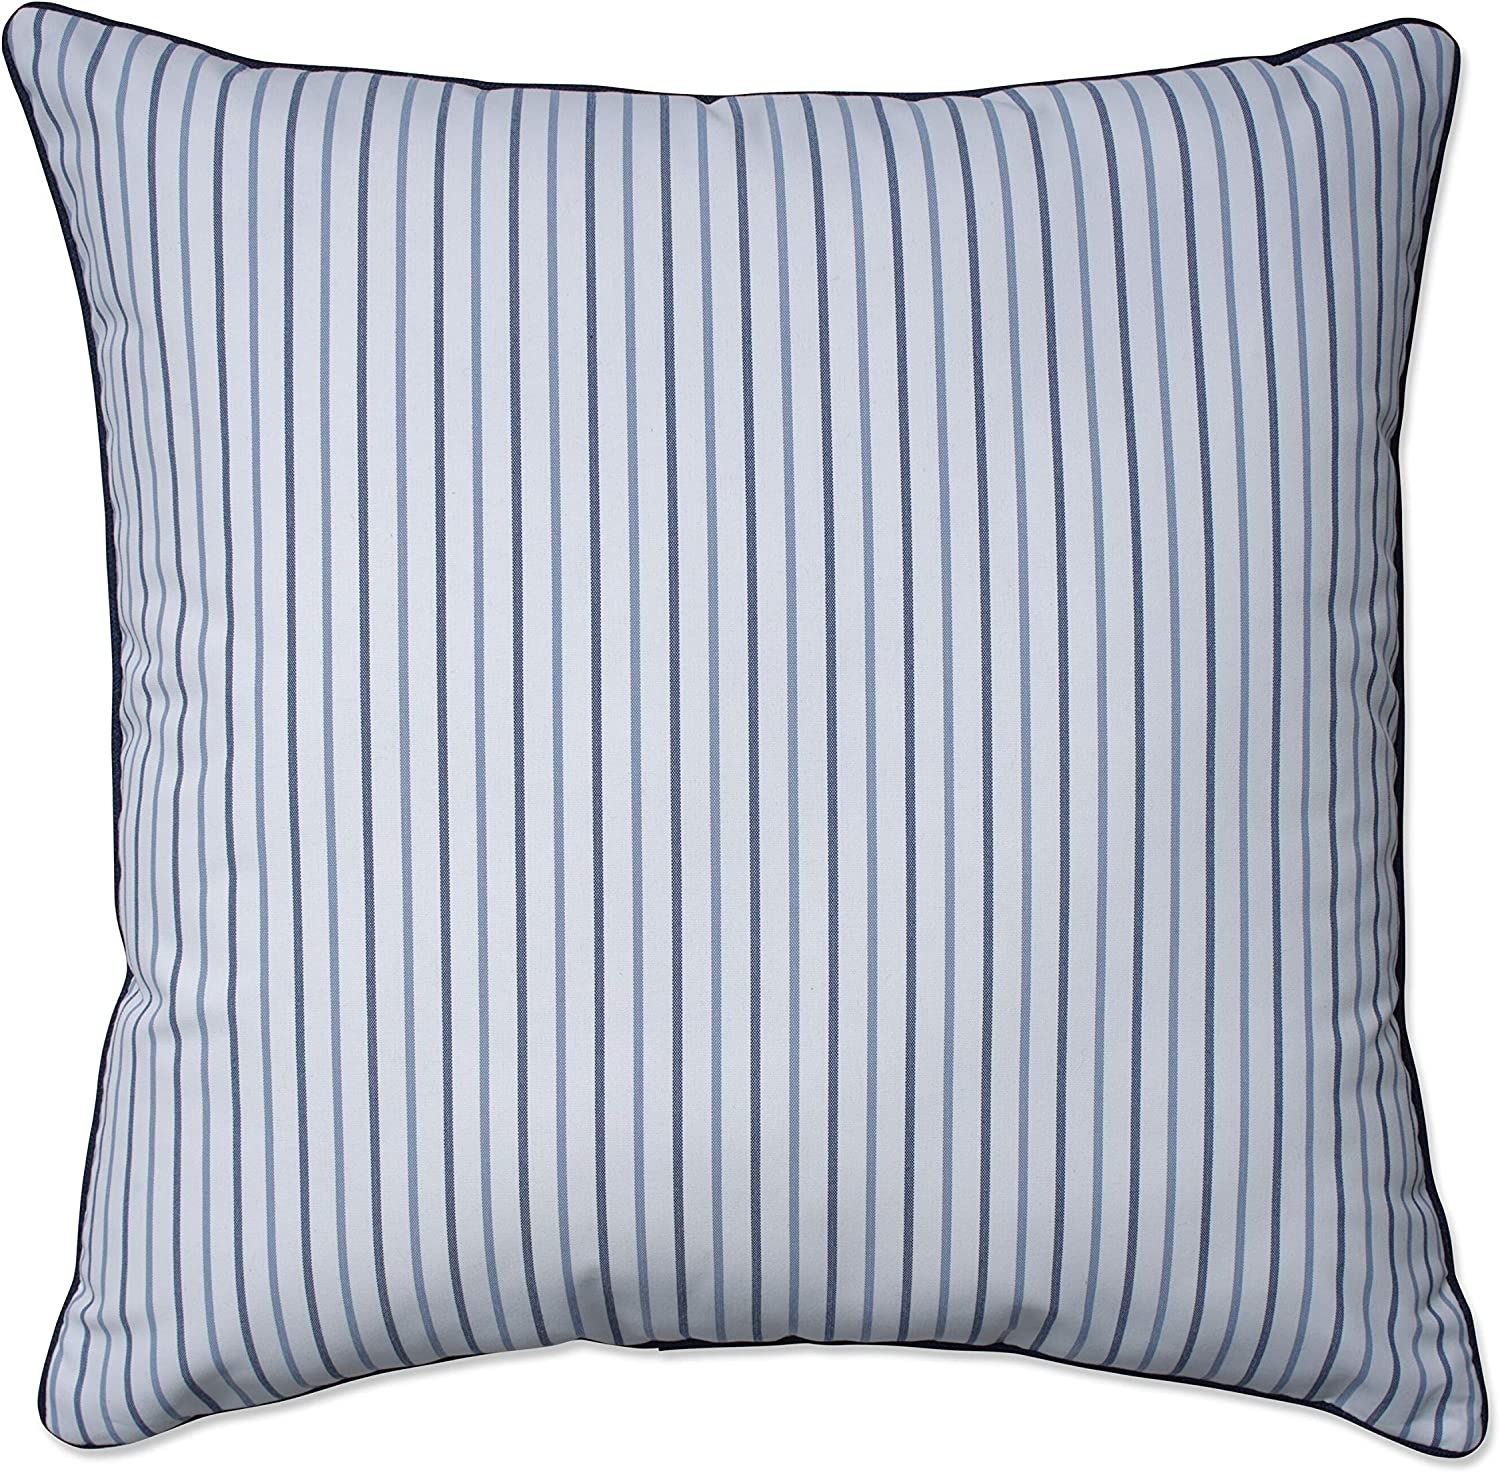 Pillow Perfect 25 Inch Floor W 5 in. New products world's highest quality popular L Max 44% OFF X